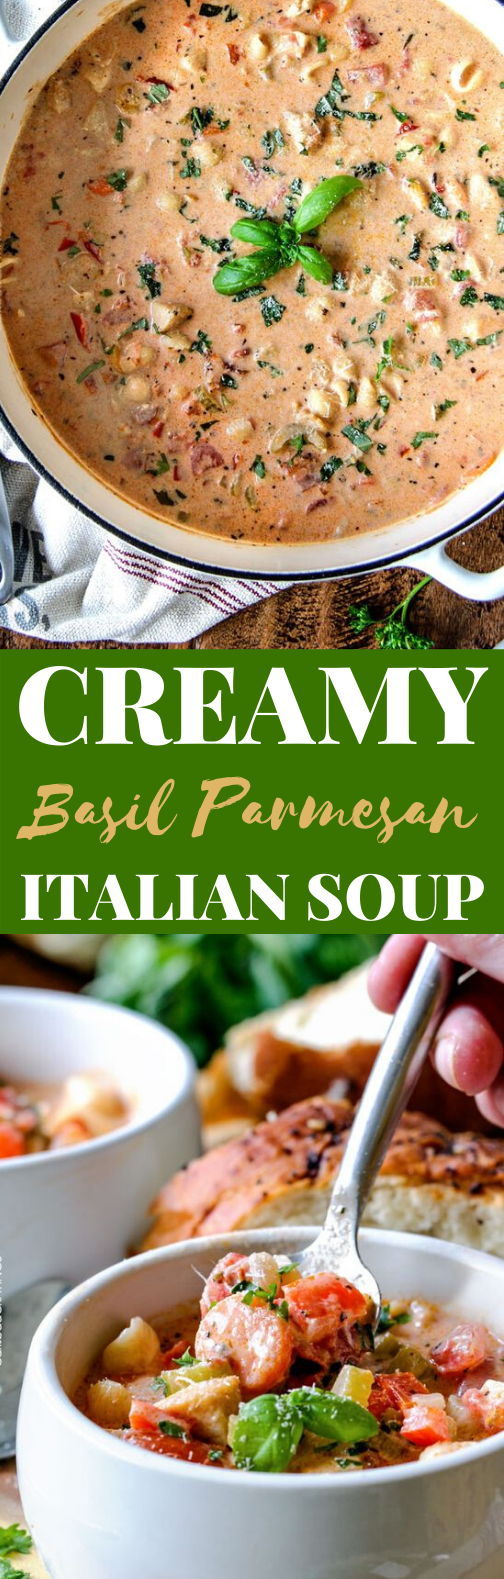 Creamy Italian Soup #dinner #recipes #soup #winter #comfortfood